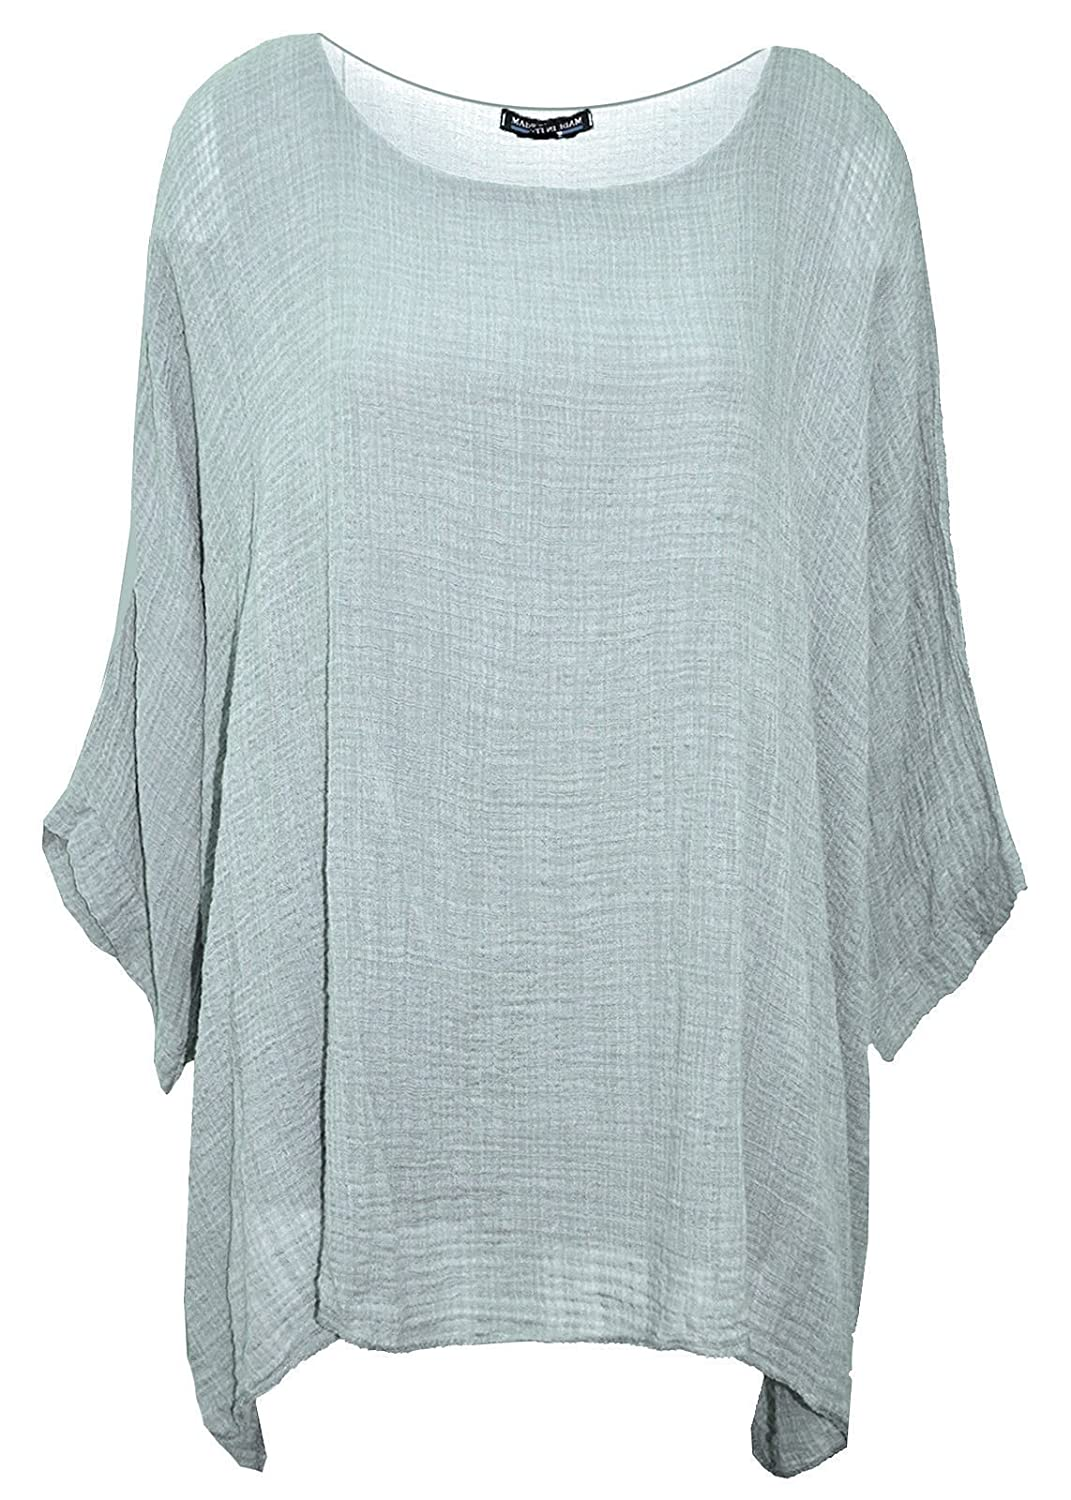 Elegant Vaps New Ladies Top Womens Plus Size Italian Plain Dress Loose Fit Batwing Lagenlook Kimono Top